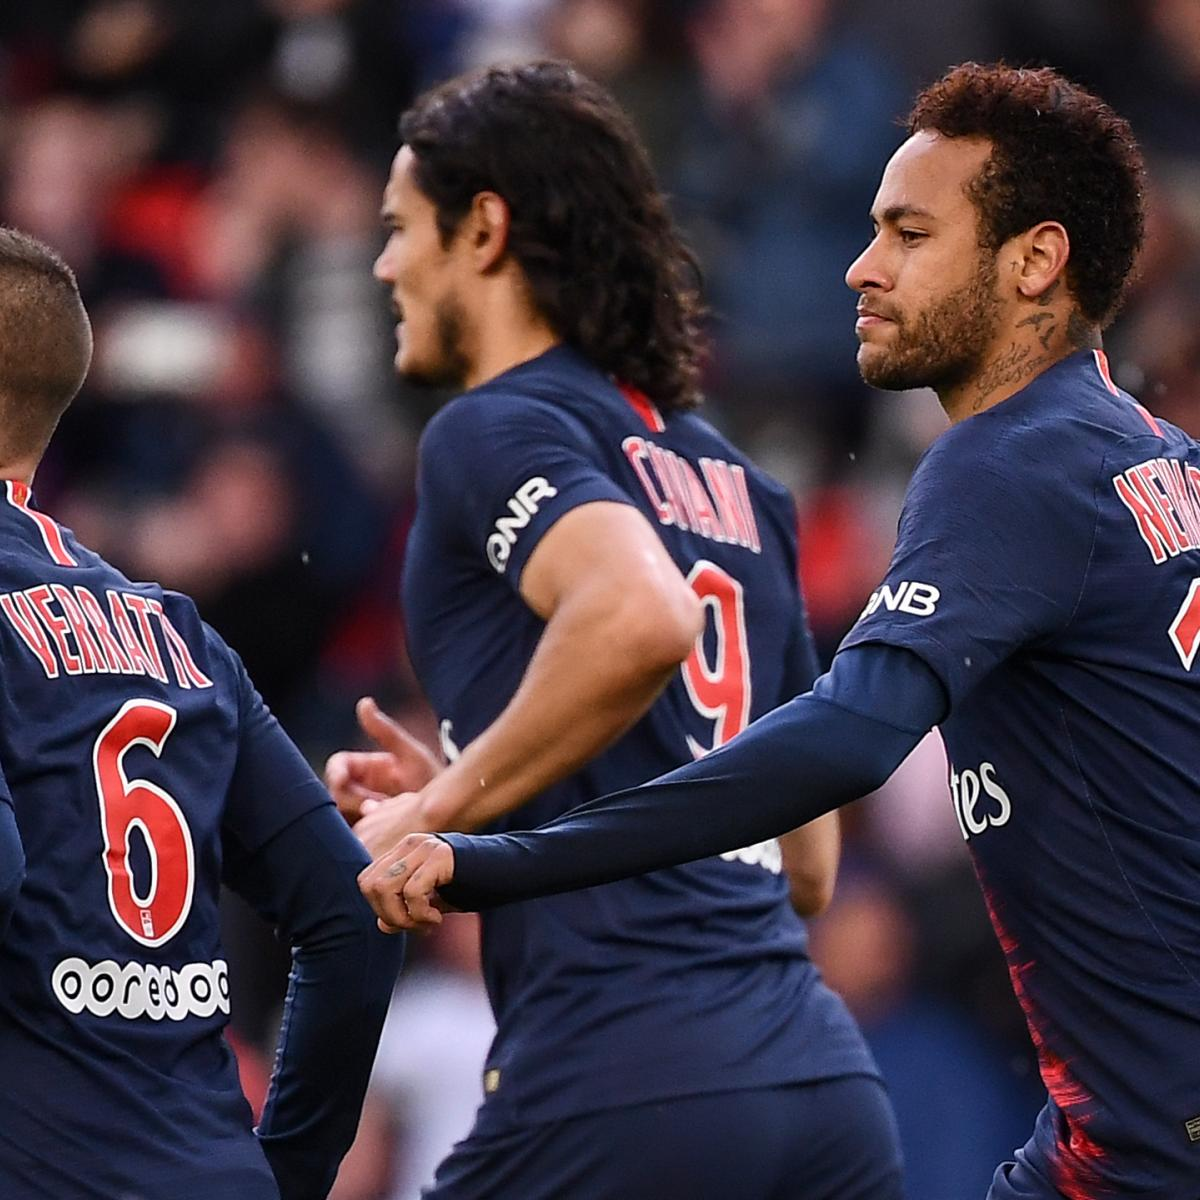 Neymar scored his 50th Paris Saint-Germain goal to salvage a 1-1 draw against Nice in Ligue 1 at the Parc des Princes on Saturday: The first half was a tame affair with chances at a premium for both sides...